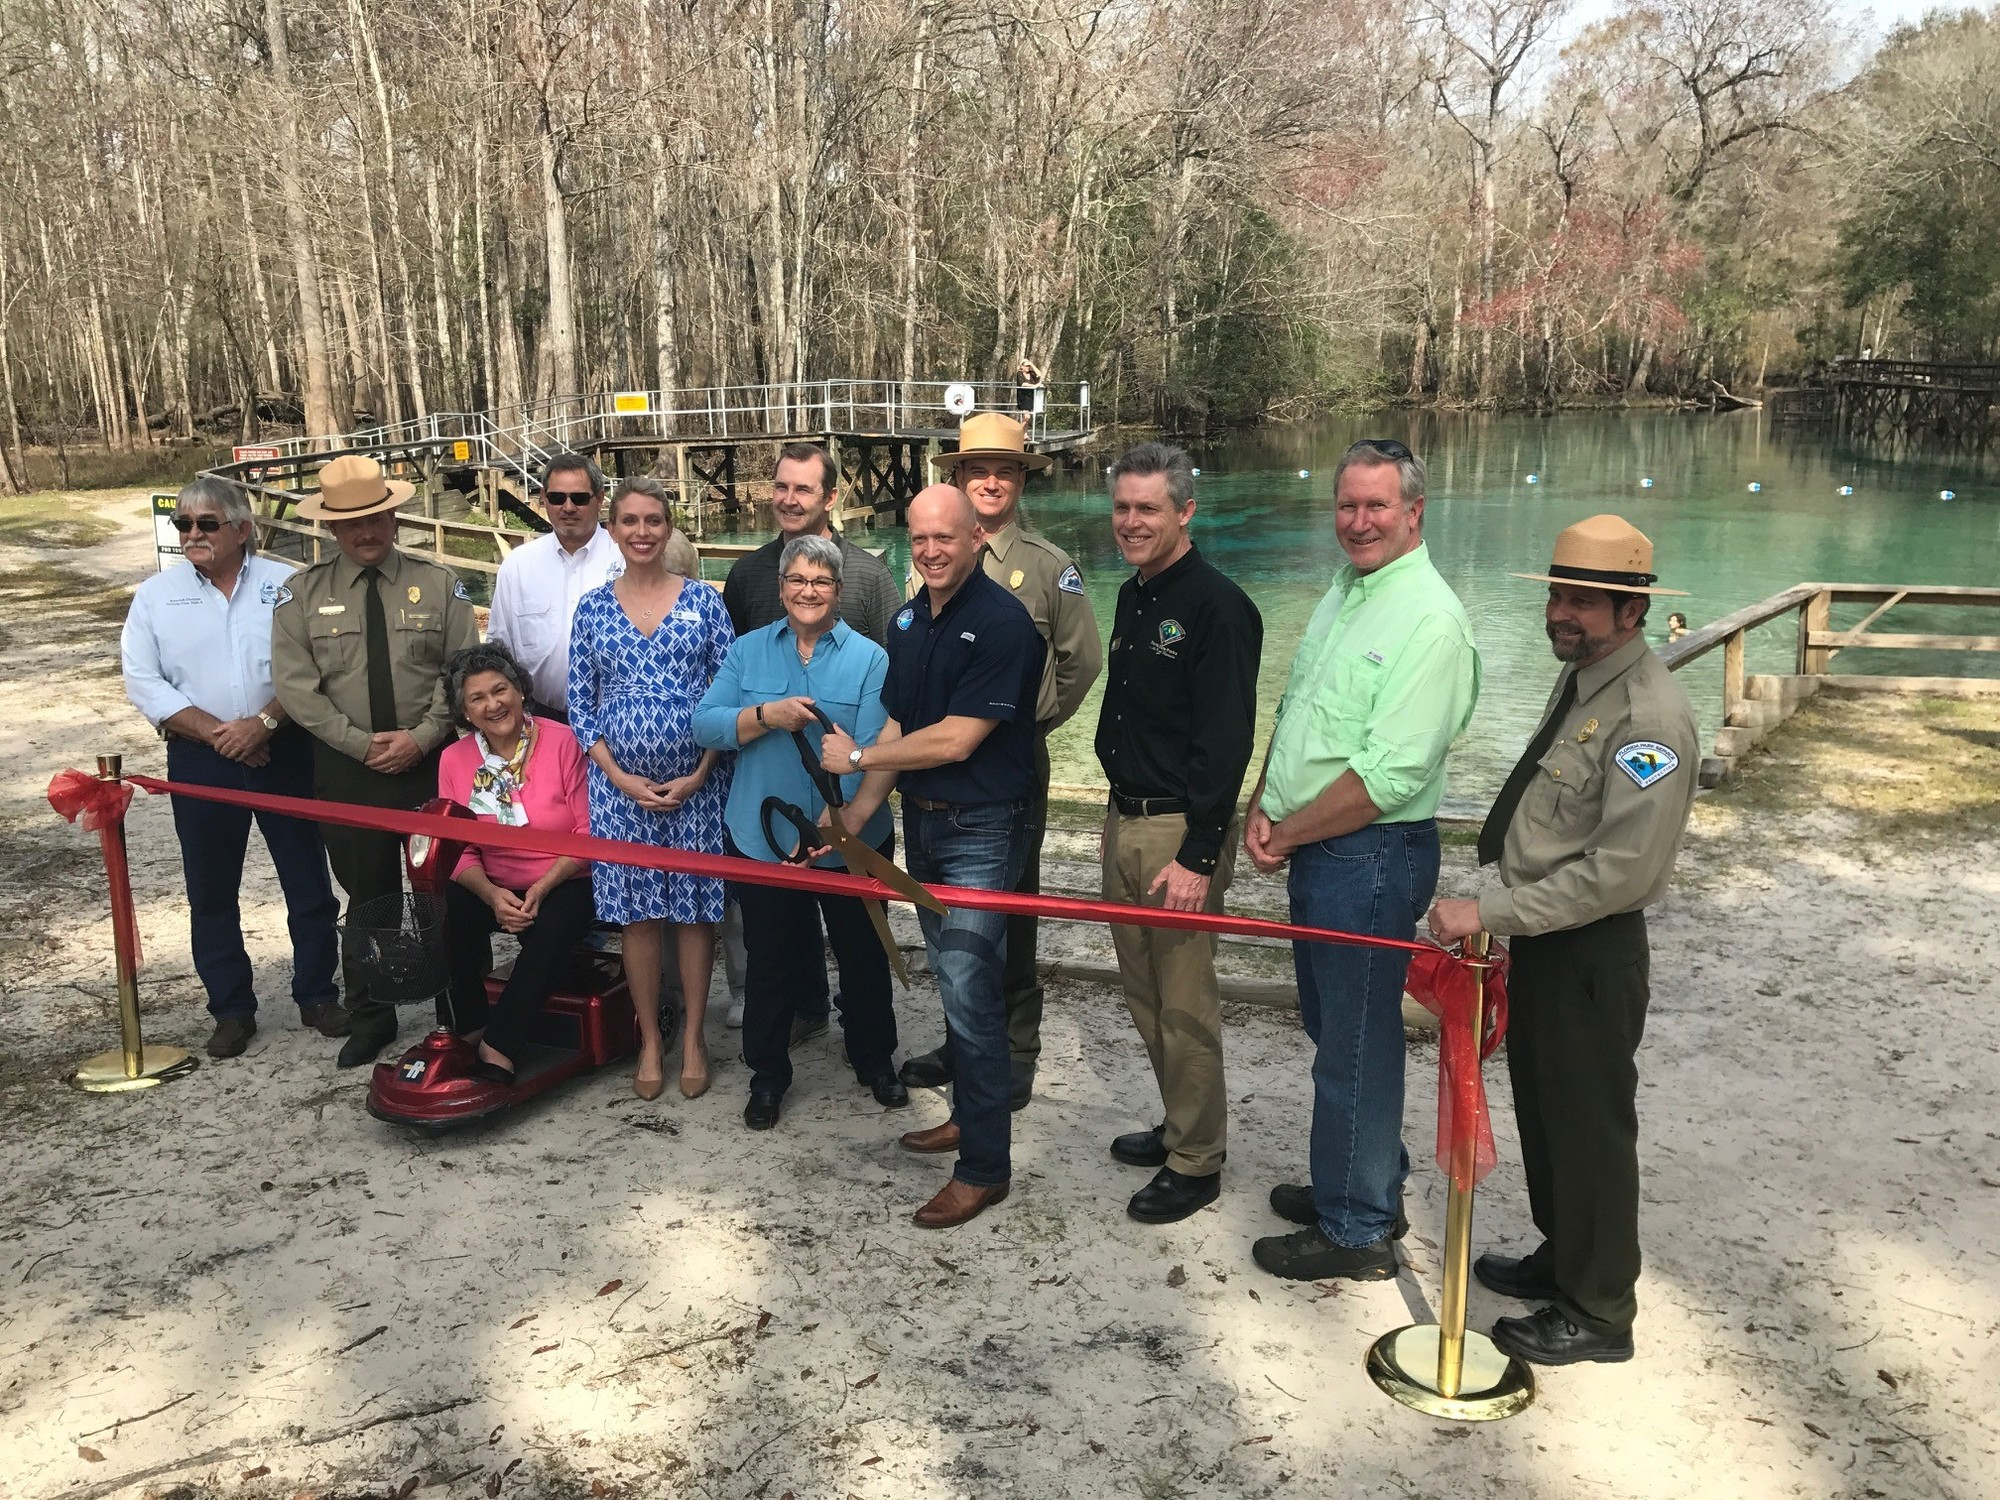 Officials (including Paula Russo, Traci Deen, Kim Davis, Noah Valenstein, Eric Draper, Kevin Brown, Cliff Maxwell, Gabby Paxton, and Jason Vickery) gathered on Feb. 9 to mark the grand opening of Gilchrist Blue Springs State Park.Photo by DEP